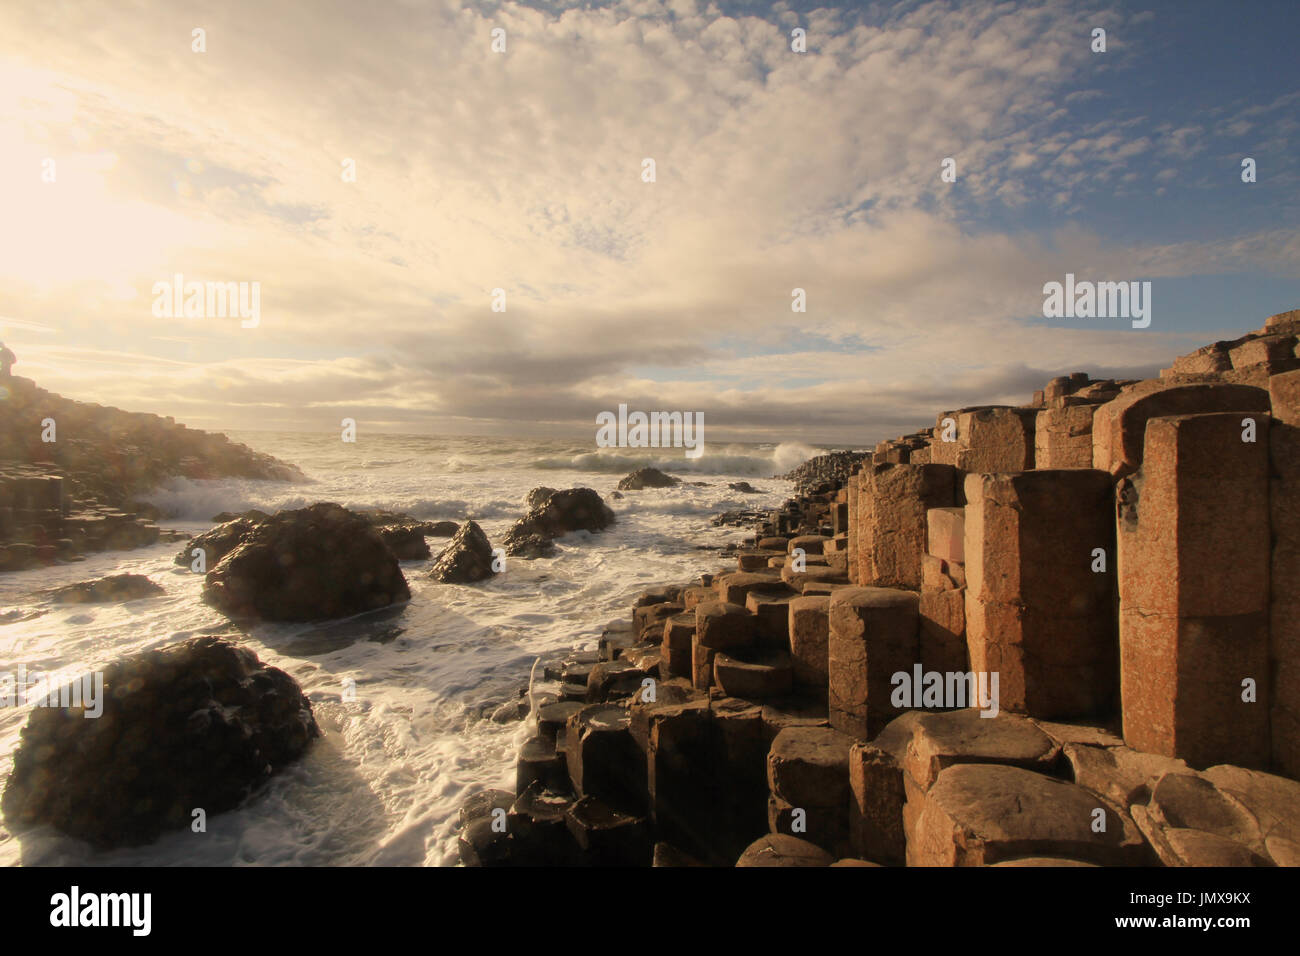 Northern Ireland, famous tourist site - Stock Image